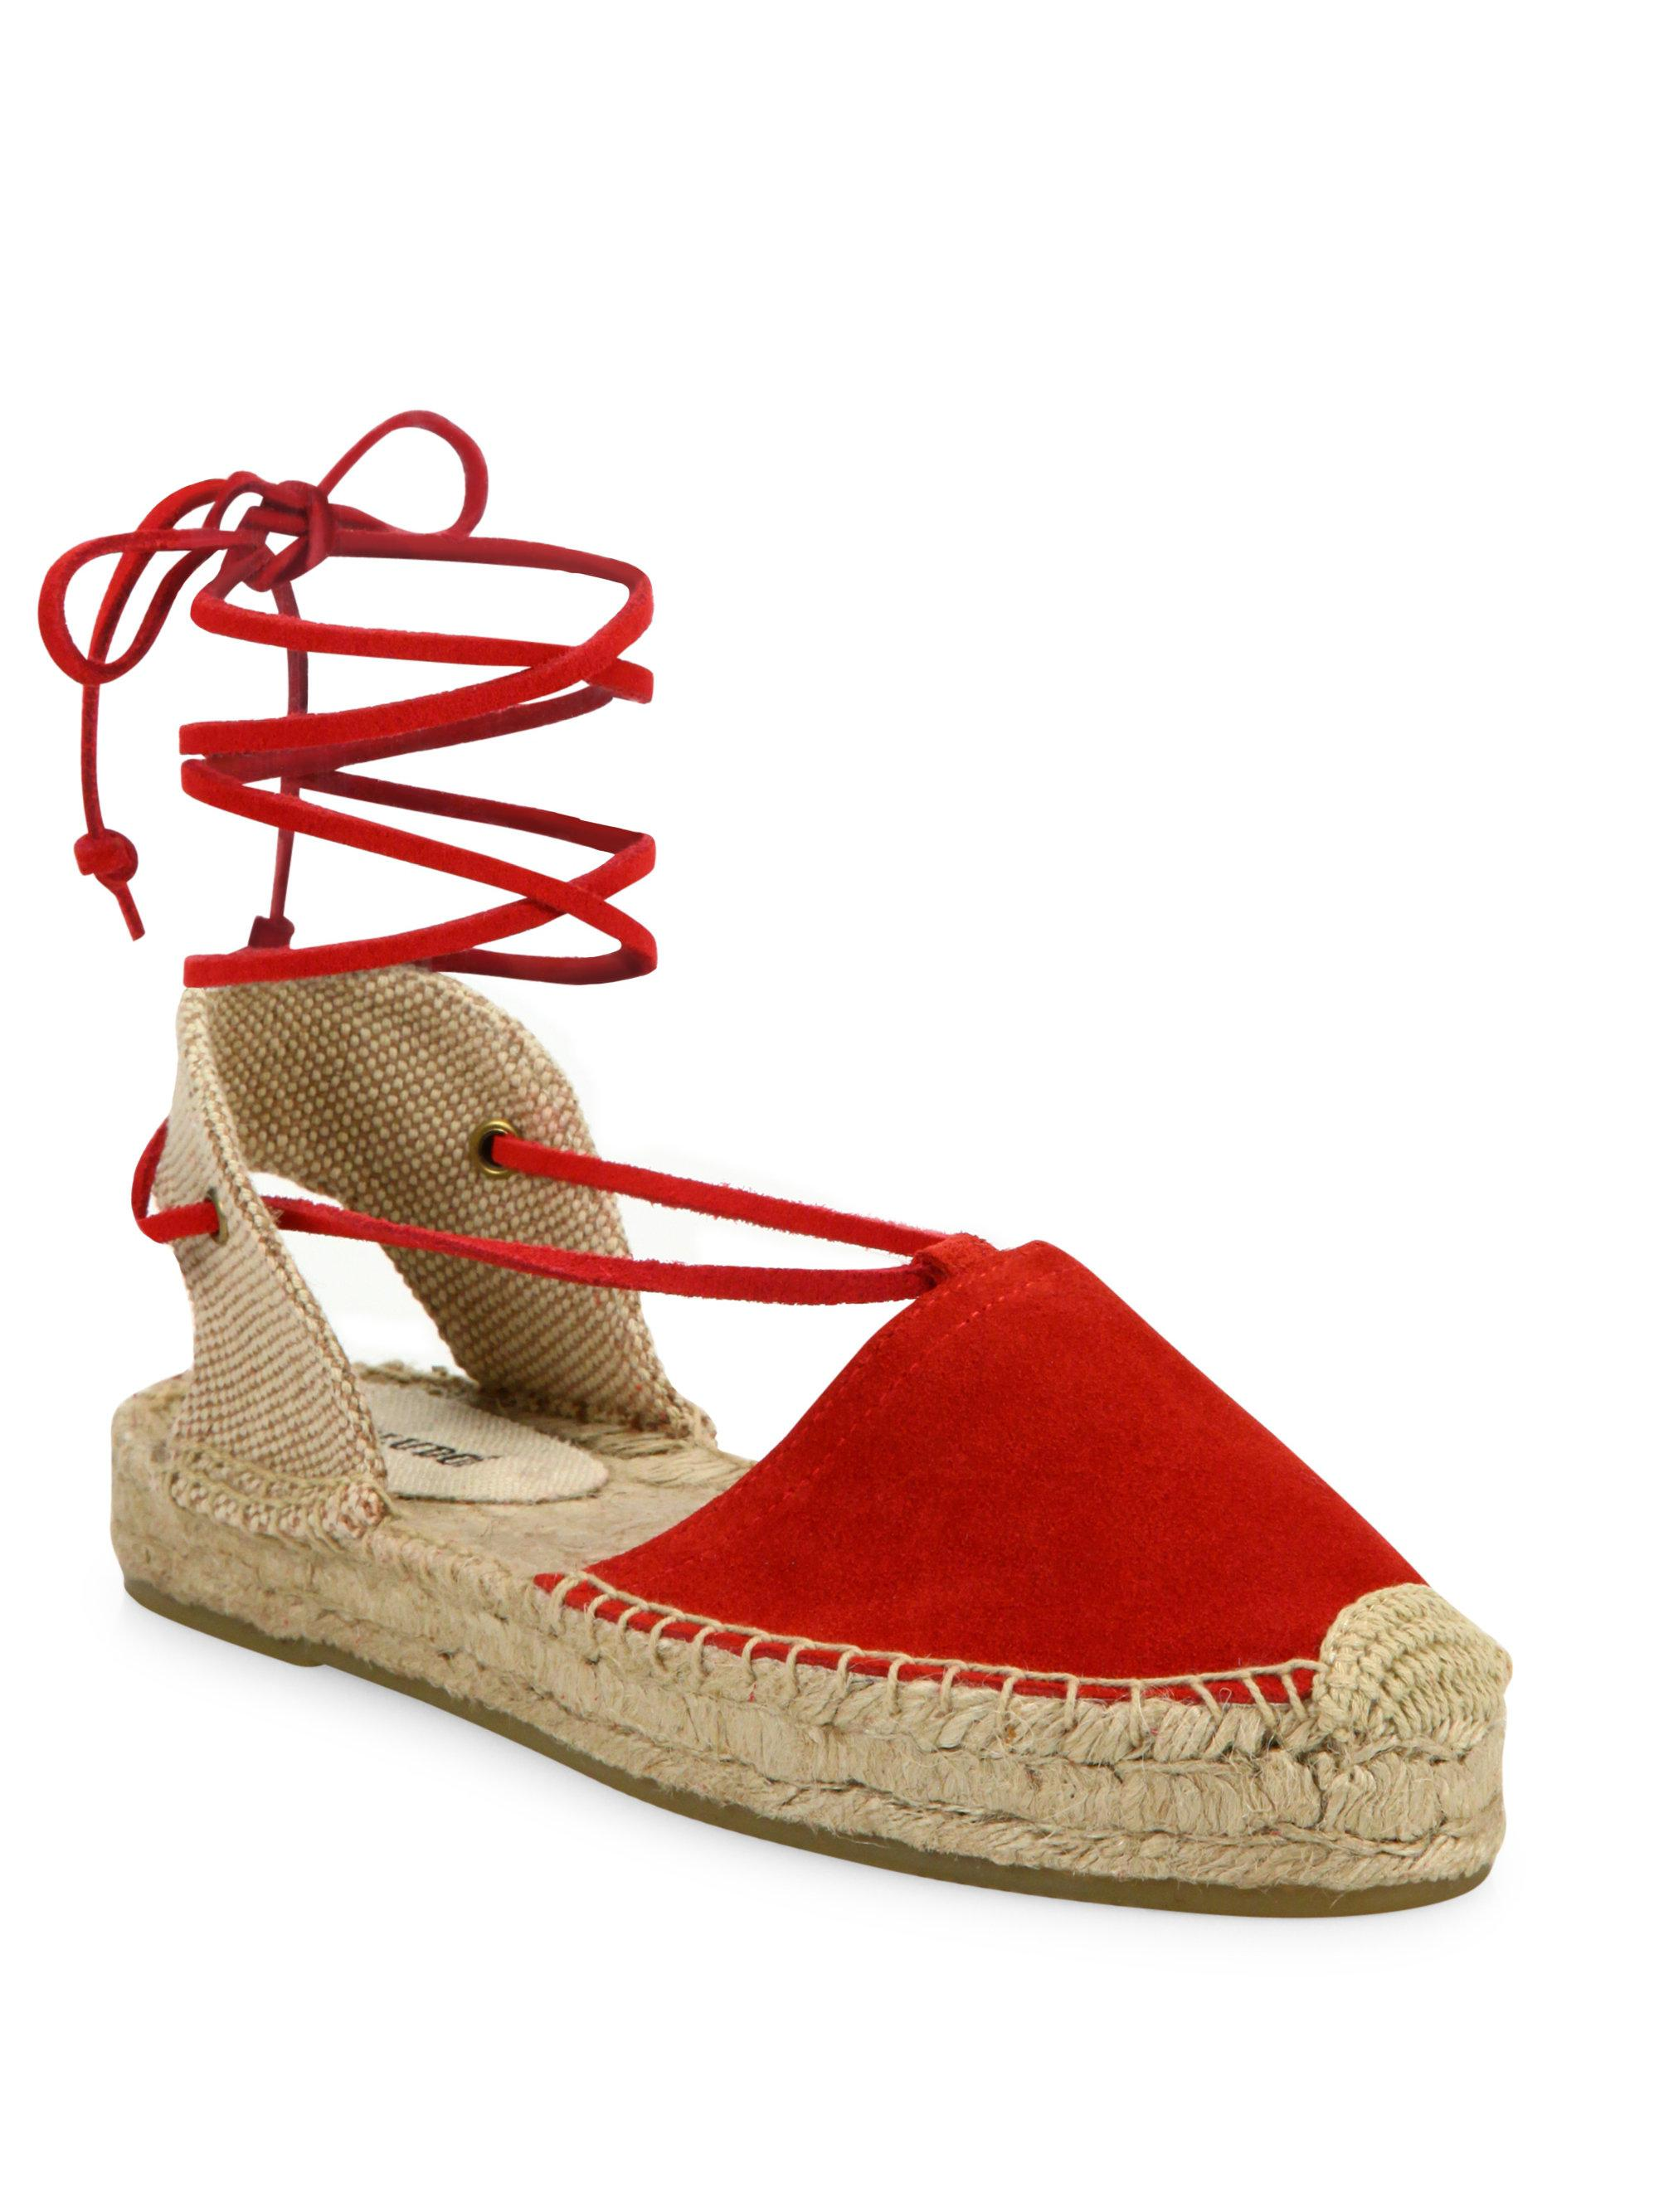 2d764f79eef0 Soludos Suede Lace-up Platform Espadrilles in Red - Lyst